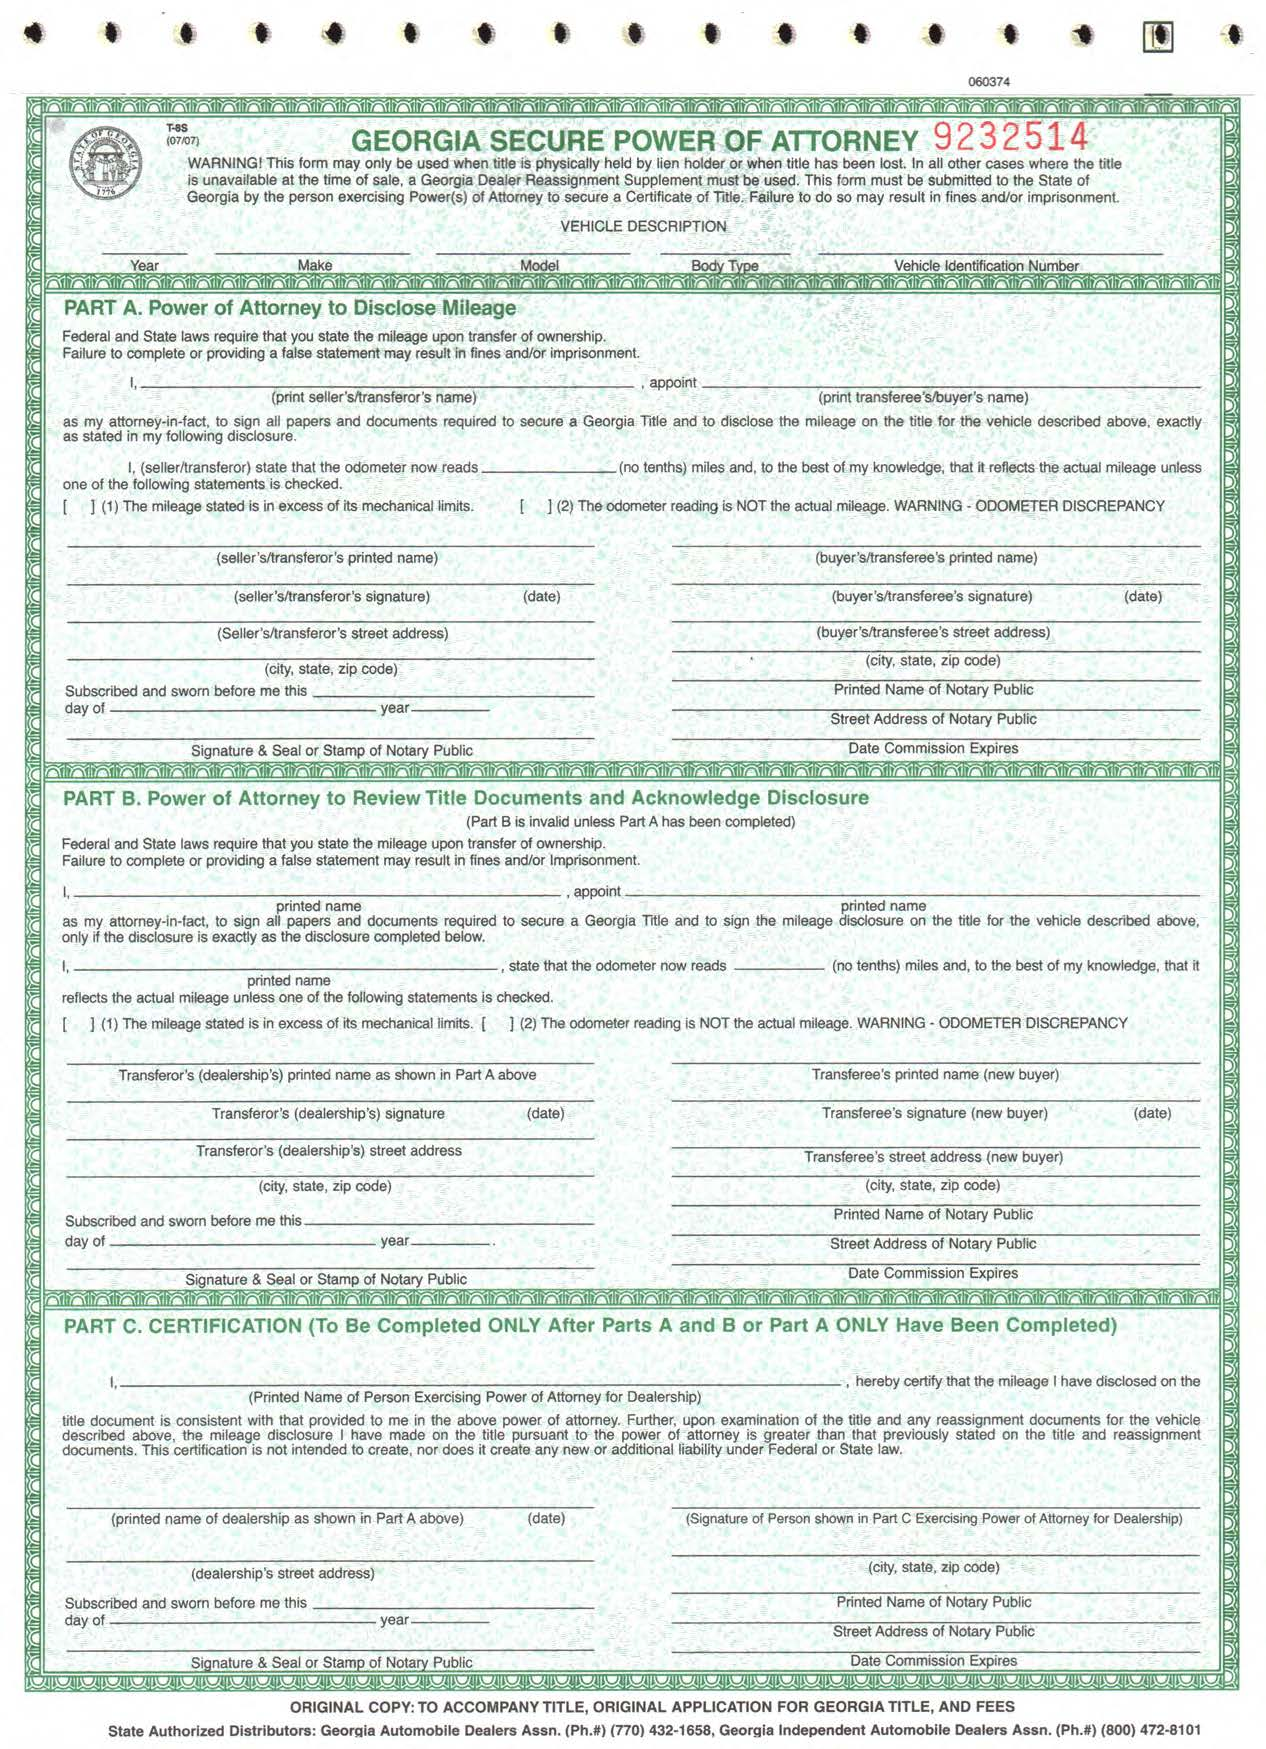 Georgia Secure Power of Attorney Form T-8s | Diminished ... on notary statement letter sample, notary to notarize letter, notary letter format, samples of notarized proof of income letters, notary examples of letters, notary document format, notary notarized letter,